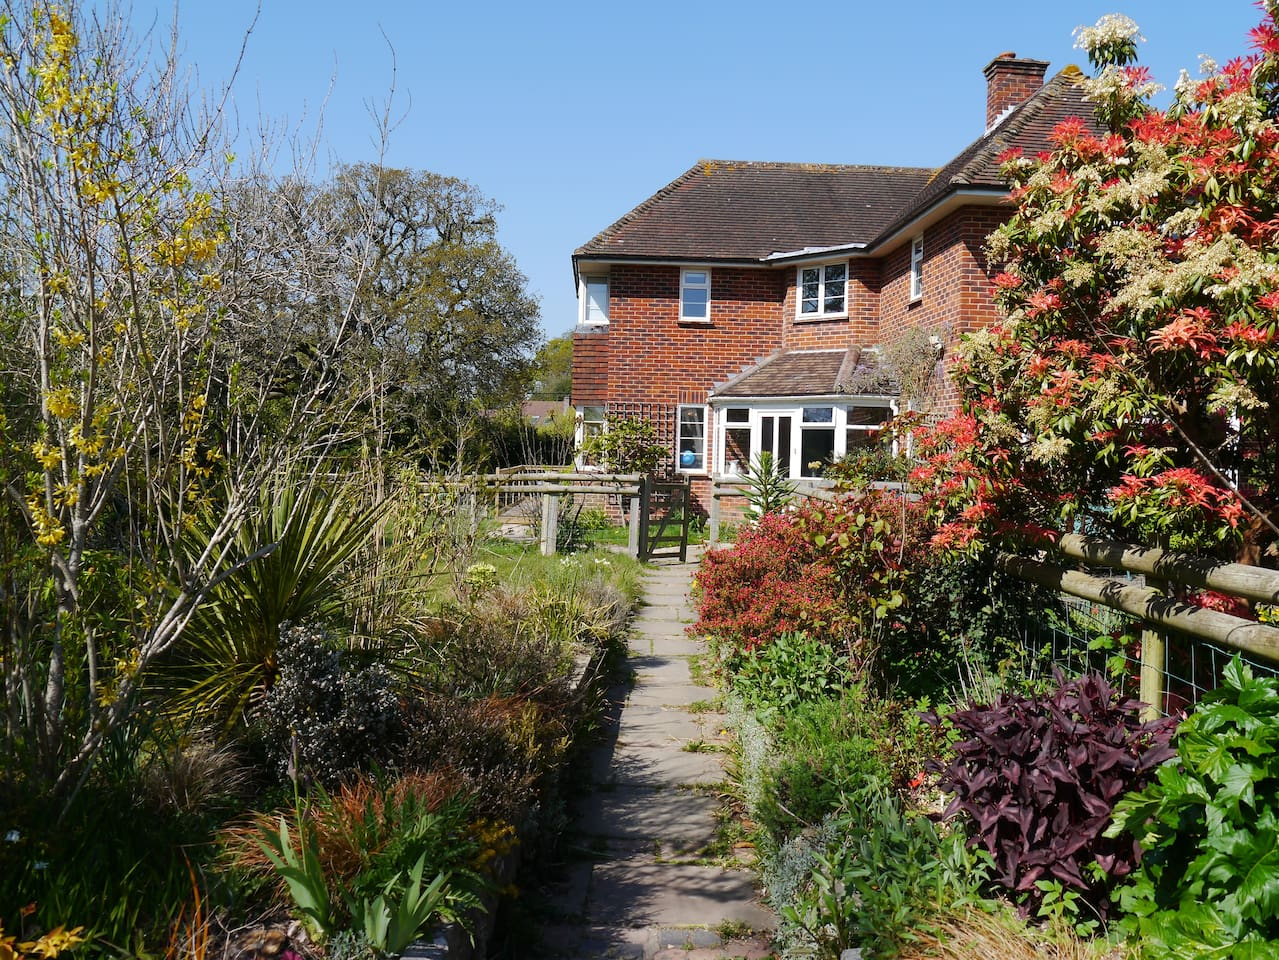 Main house and access to Oakfield Annex. Sleeps 4, two bed, two bathroom. Private access and exclusive use of breakfast room, garden and sun deck. Follow path round to the left of main house. We are in the rural village of Pilley New Forest.